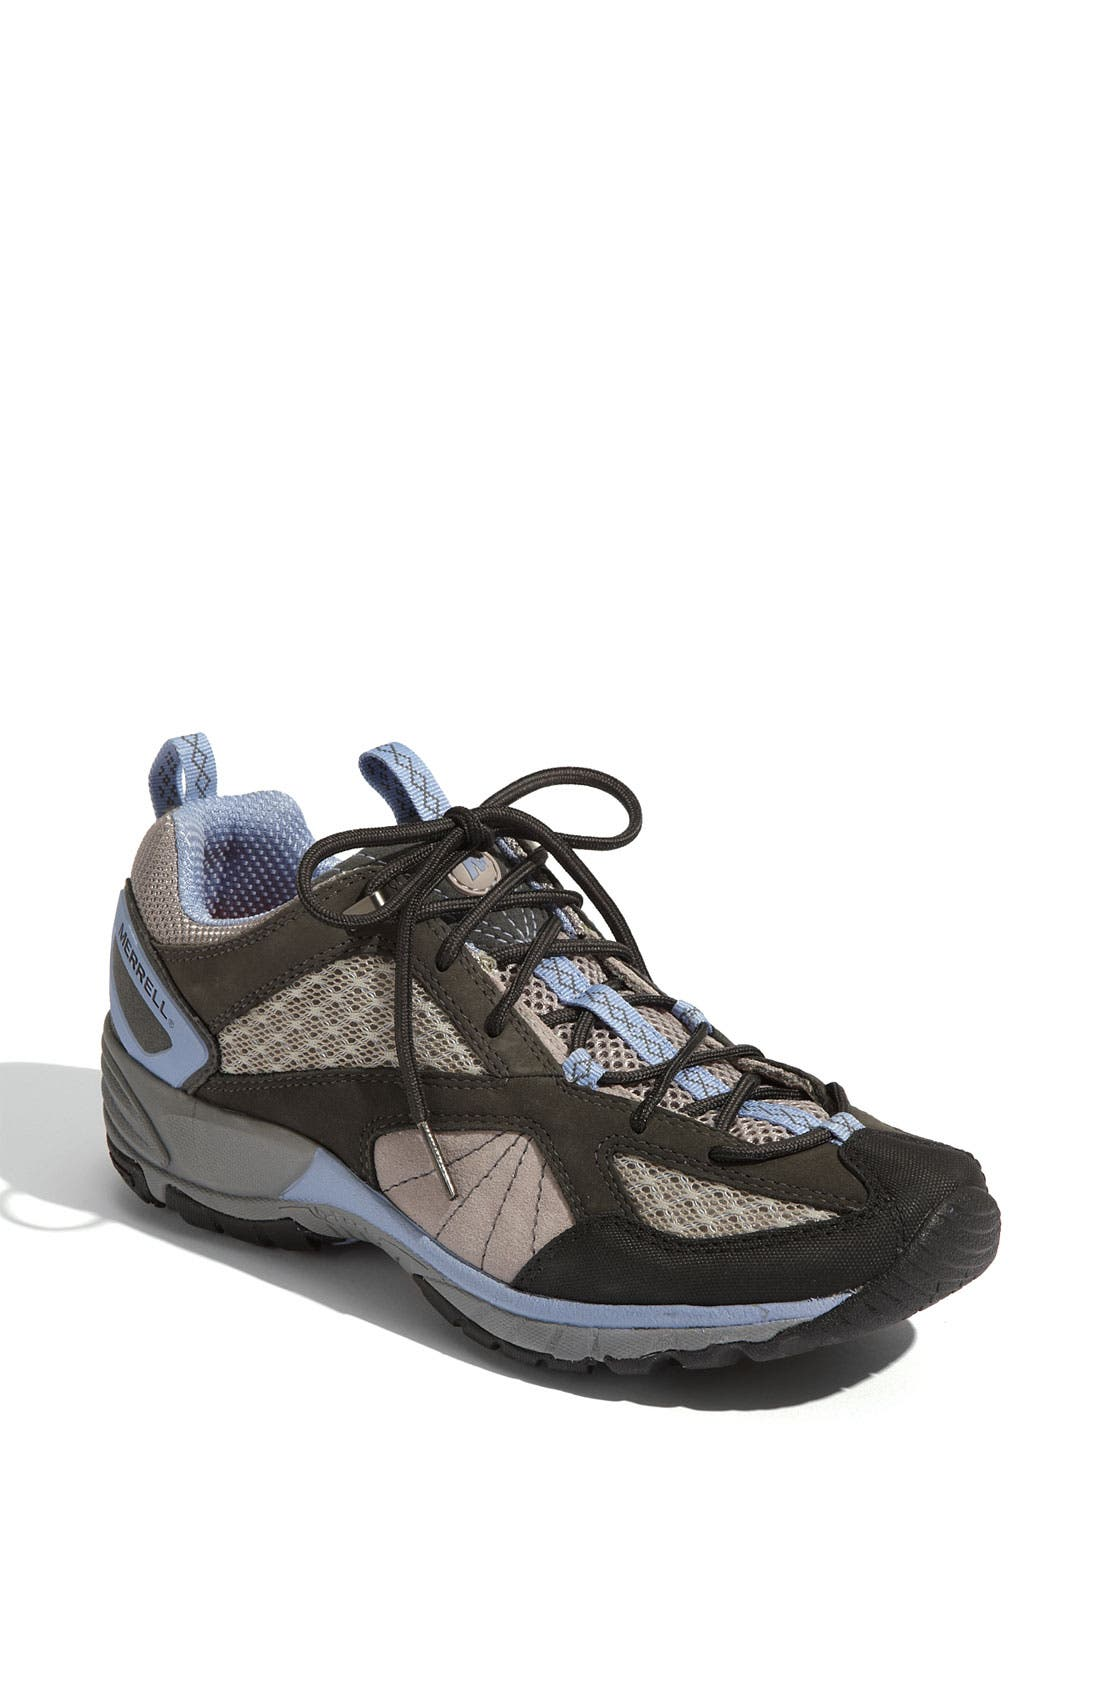 Main Image - Merrell 'Avian Light Ventilator' Hiking Shoe (Women)